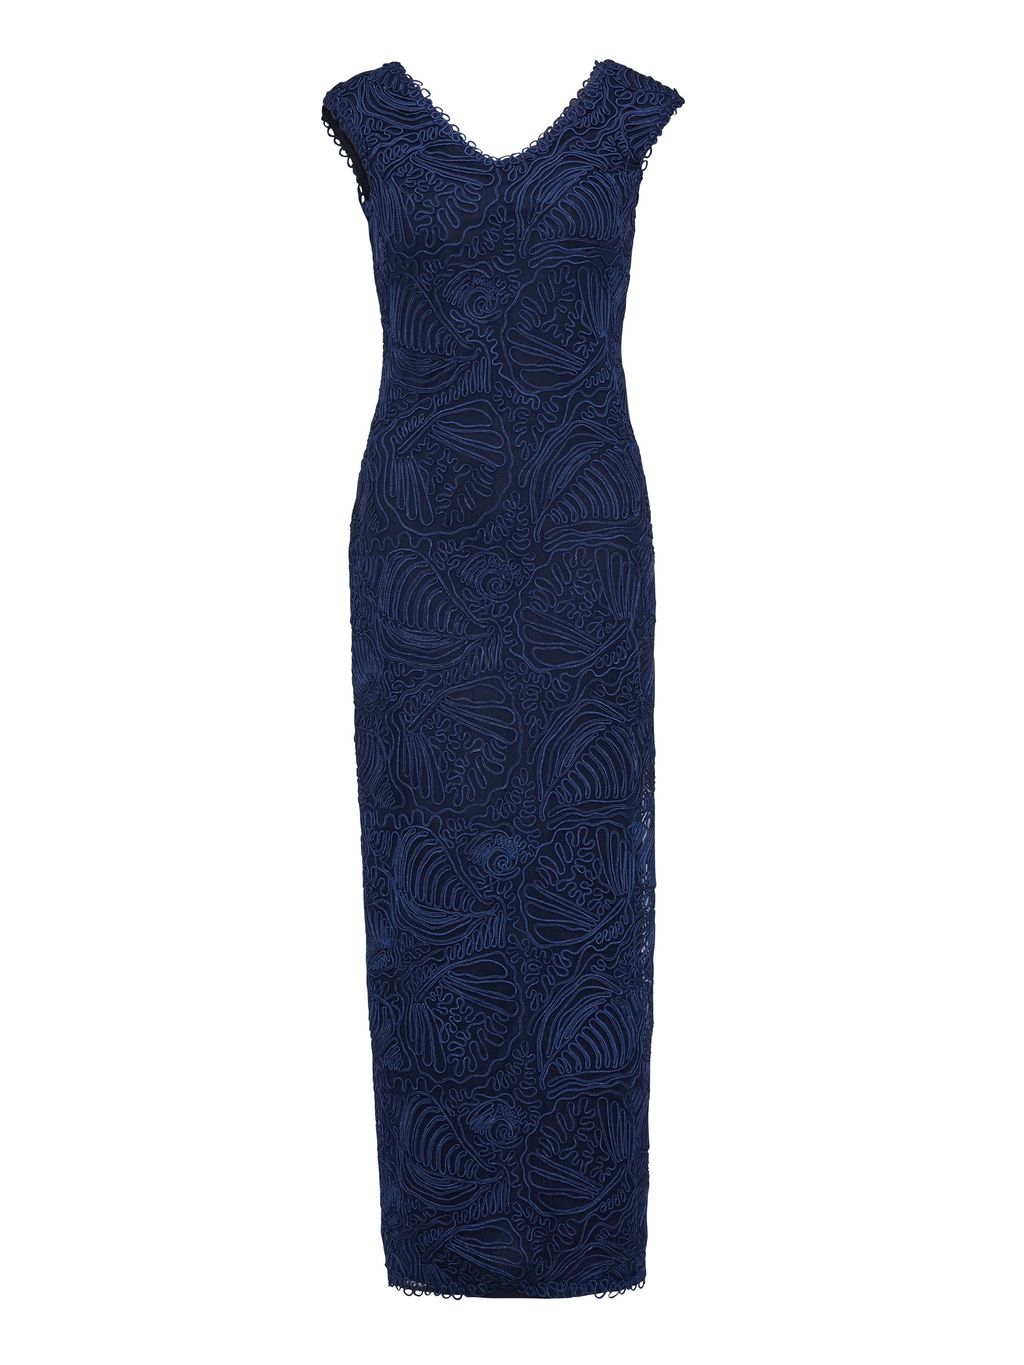 Long V Neck Braid Embroidery Net Dress, Navy - neckline: v-neck; pattern: plain; sleeve style: sleeveless; style: maxi dress; predominant colour: navy; occasions: evening; length: floor length; fit: body skimming; fibres: polyester/polyamide - 100%; sleeve length: sleeveless; pattern type: fabric; texture group: other - light to midweight; embellishment: embroidered; season: s/s 2016; wardrobe: event